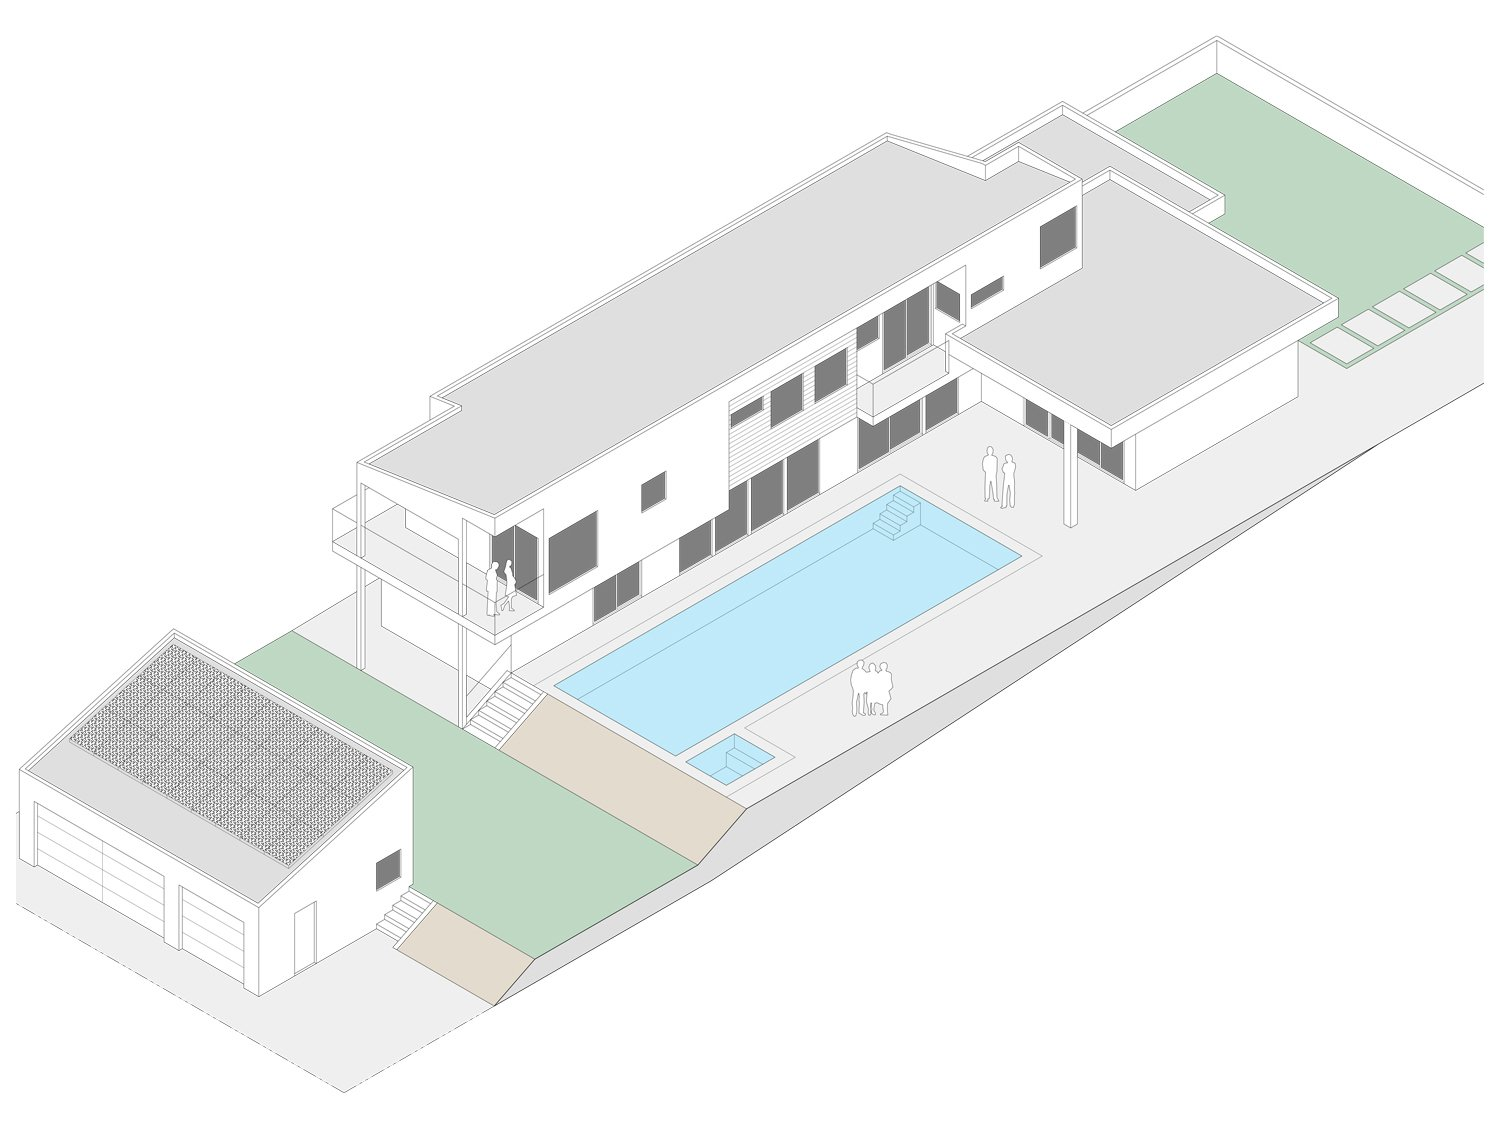 Isometric  Yale St Residence by Lincoln Chung Architect